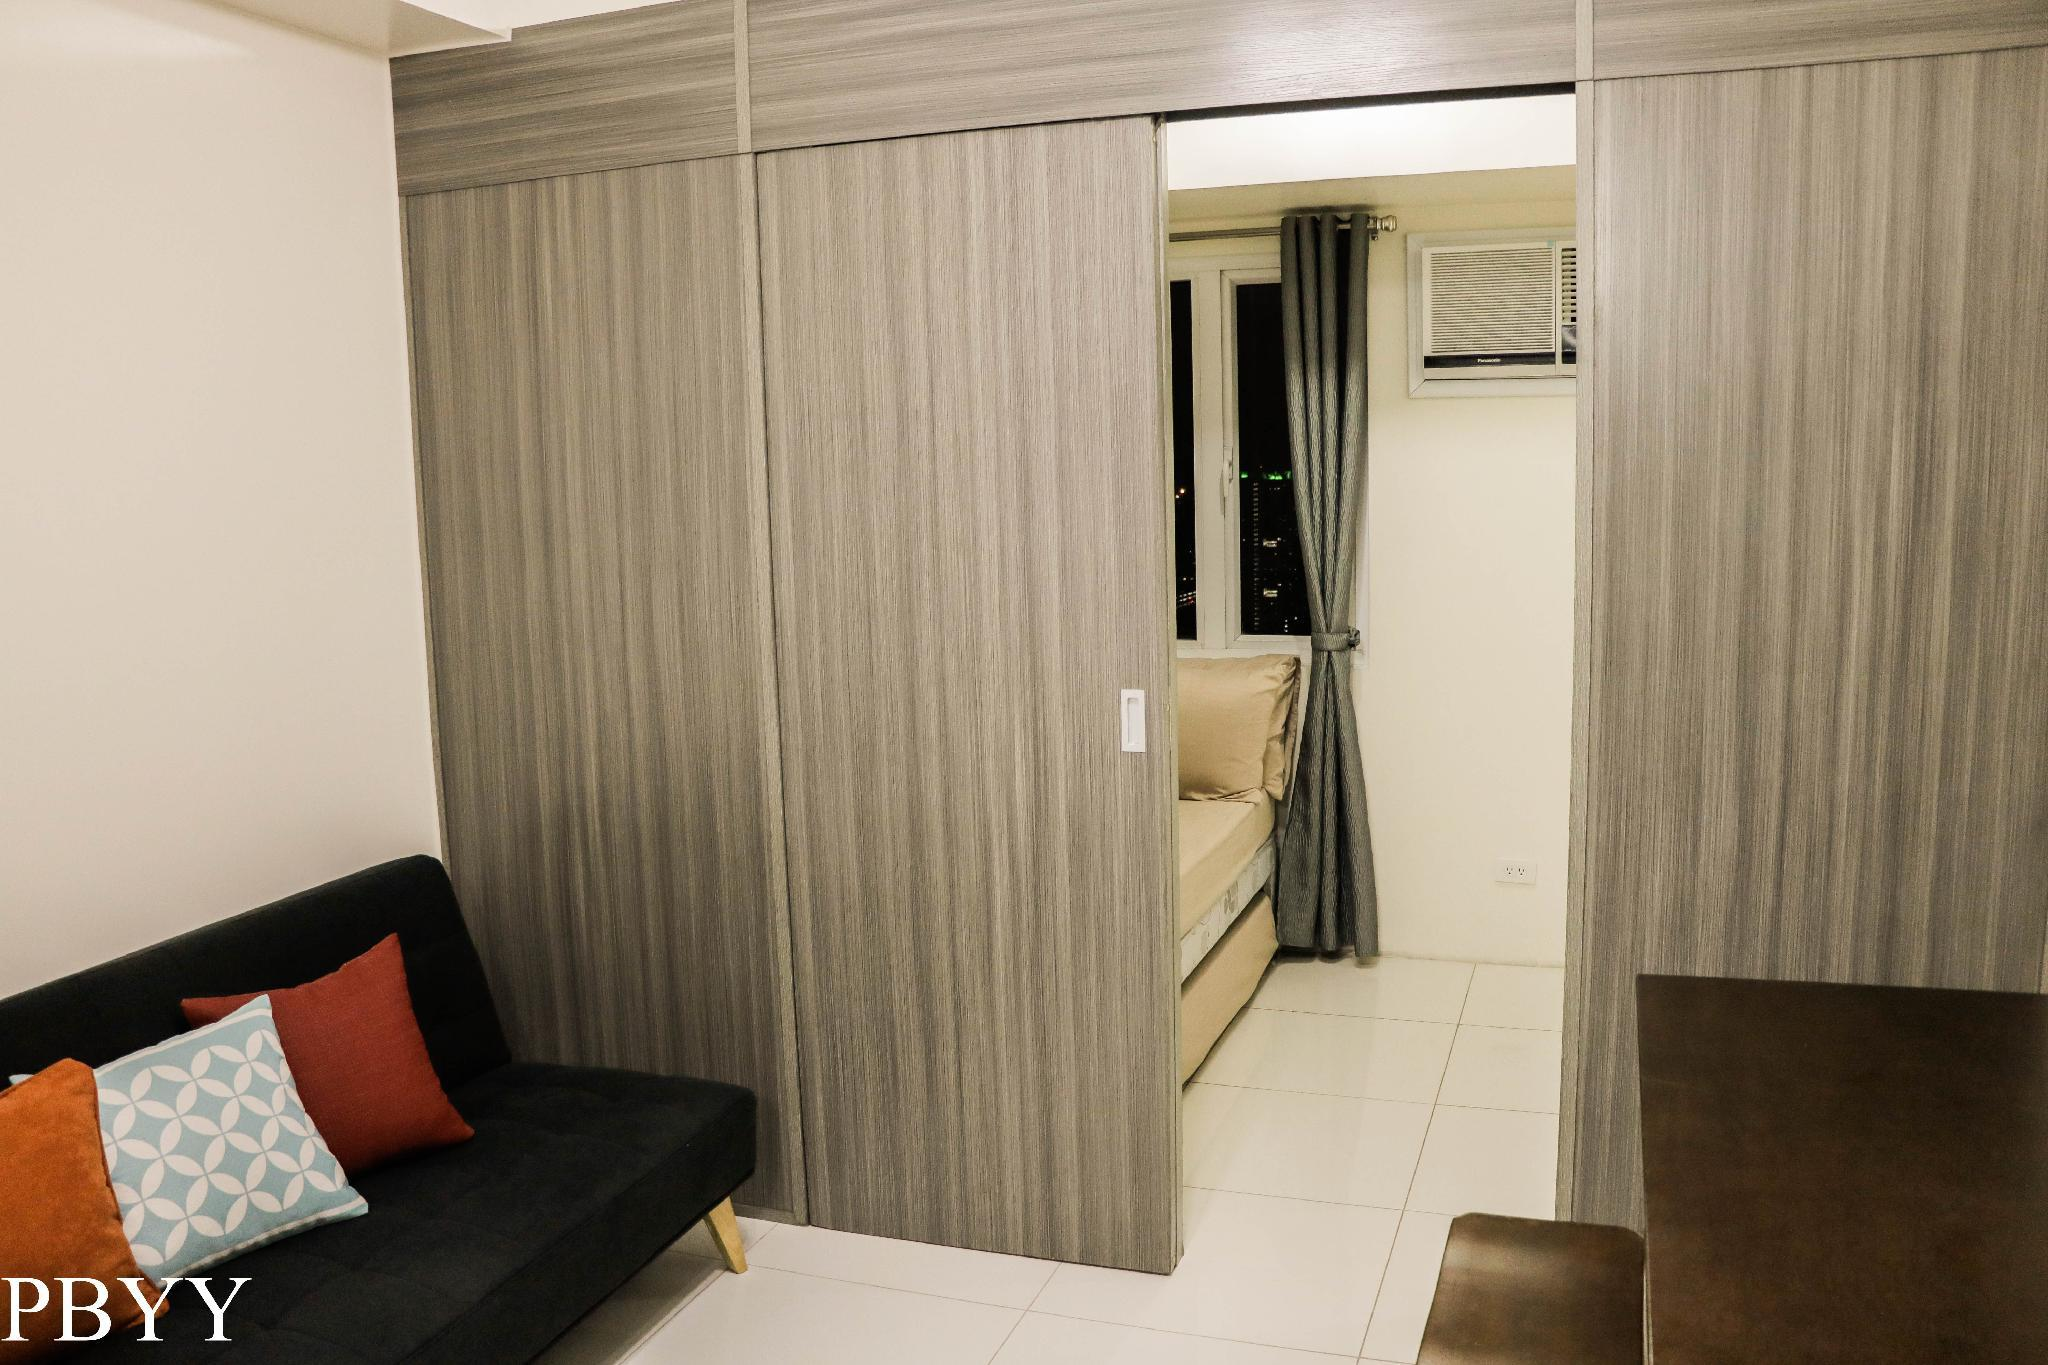 Green Residences 1 Bedroom Condo in Metro Manila